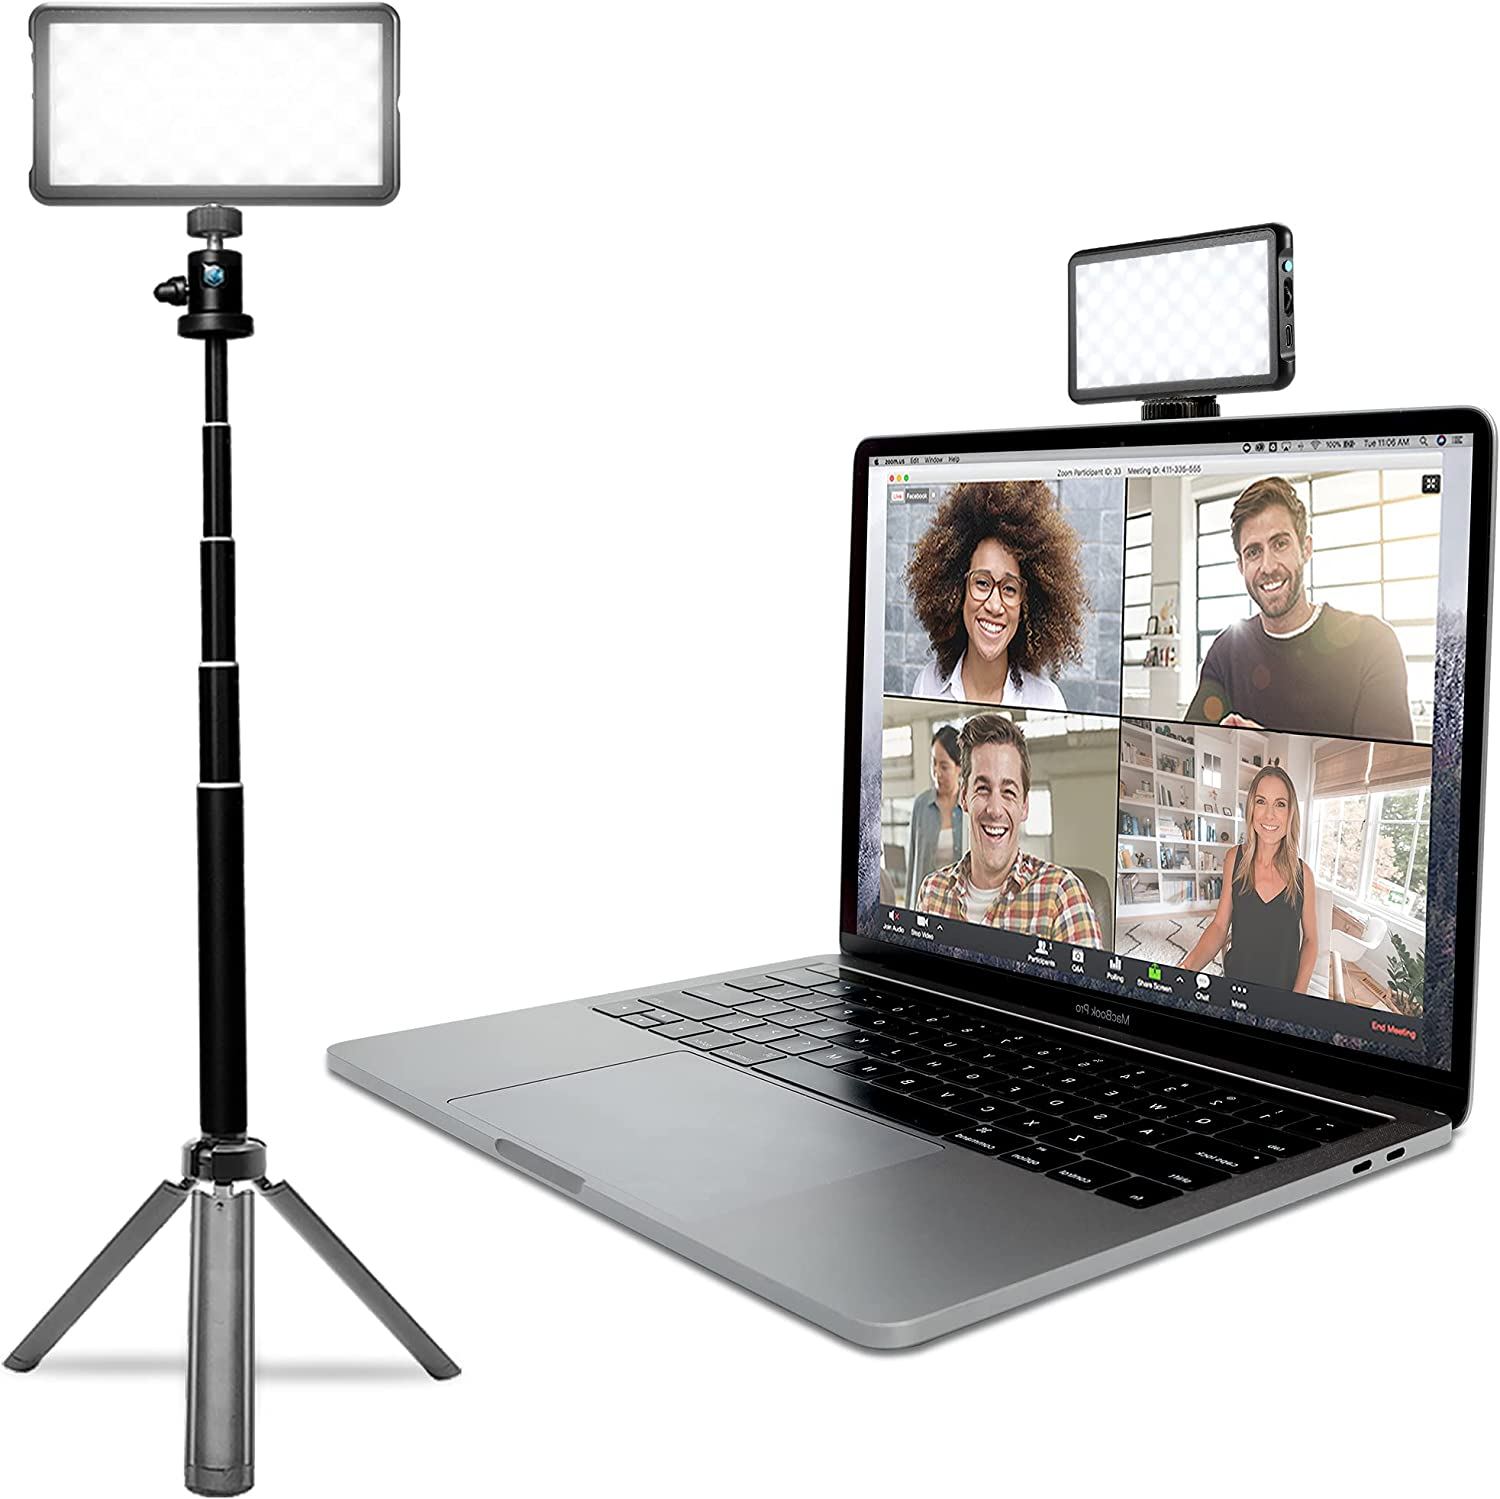 Lume Cube Broadcast Lighting Kit   Live Streaming, Video Conferencing, Remote Working, Zoom Webcam   Lighting Accessory for Laptop, Adjustable Brightness and Color Temperature, Computer Mount Included